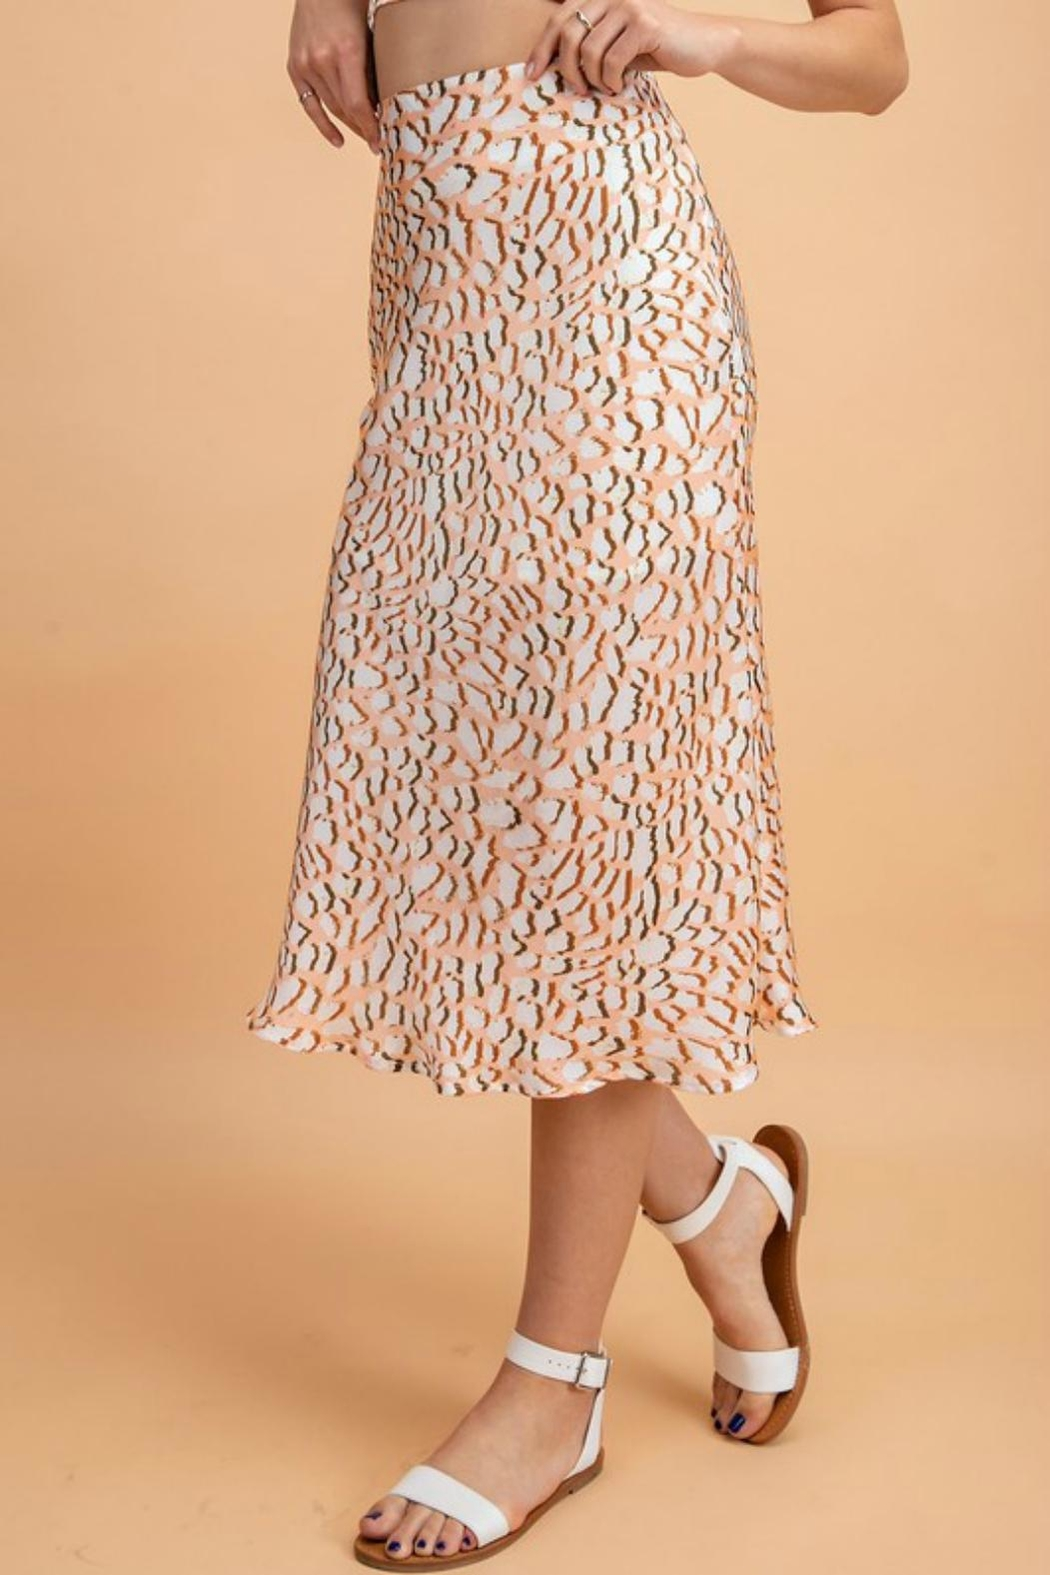 Pretty Little Things Peachy Leopard Skirt - Front Full Image